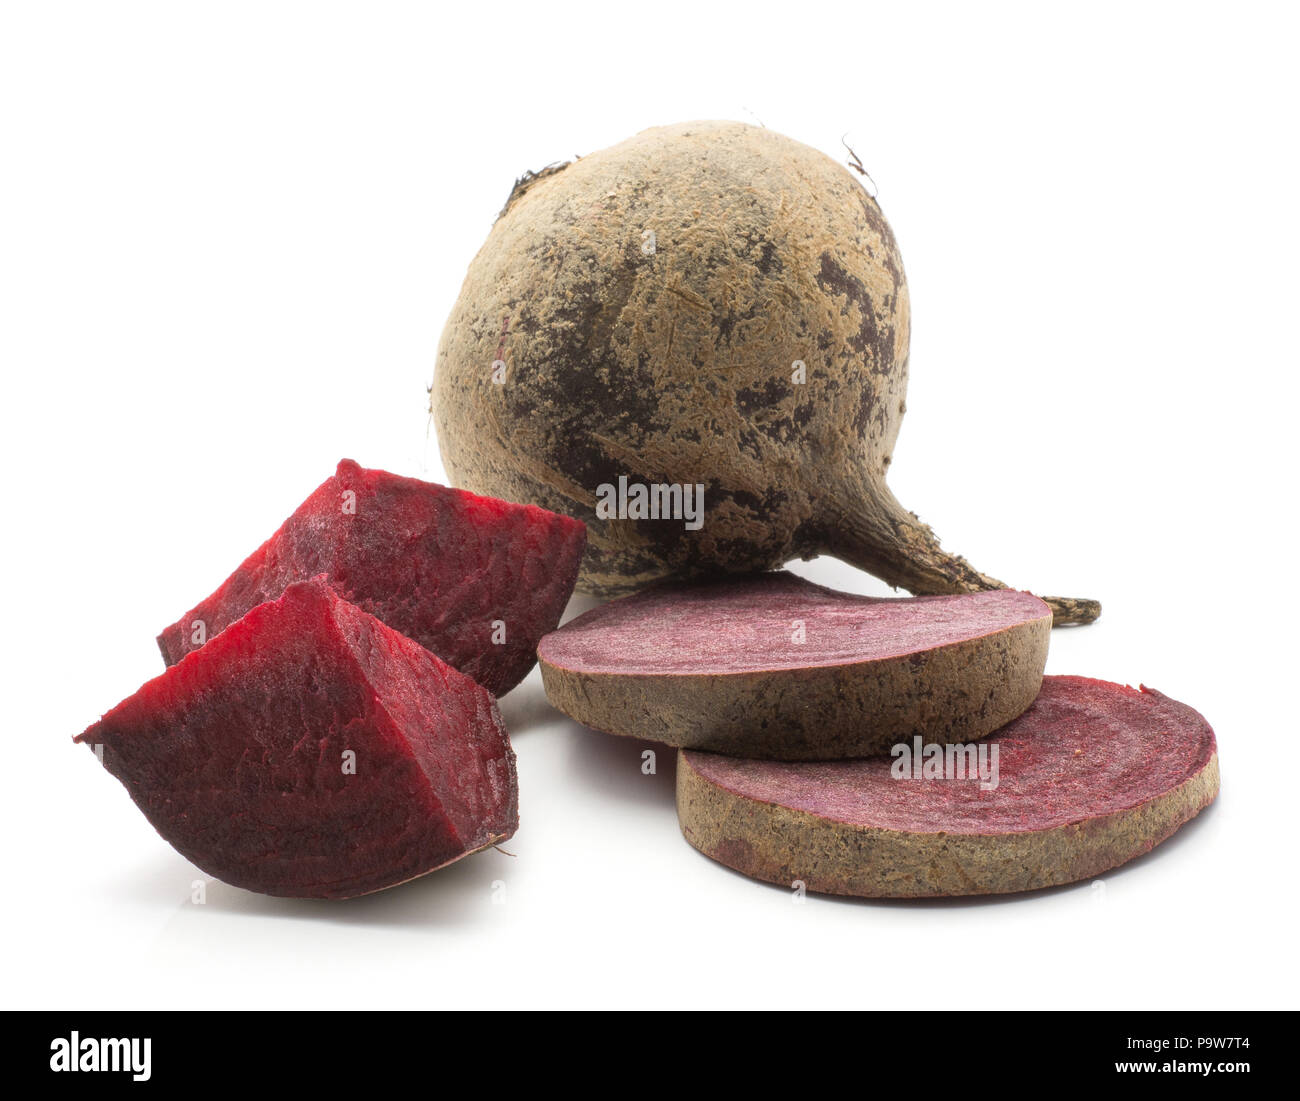 Sliced beetroot set (raw red beet) one bulb two sliced rings two pieces isolated on white background - Stock Image